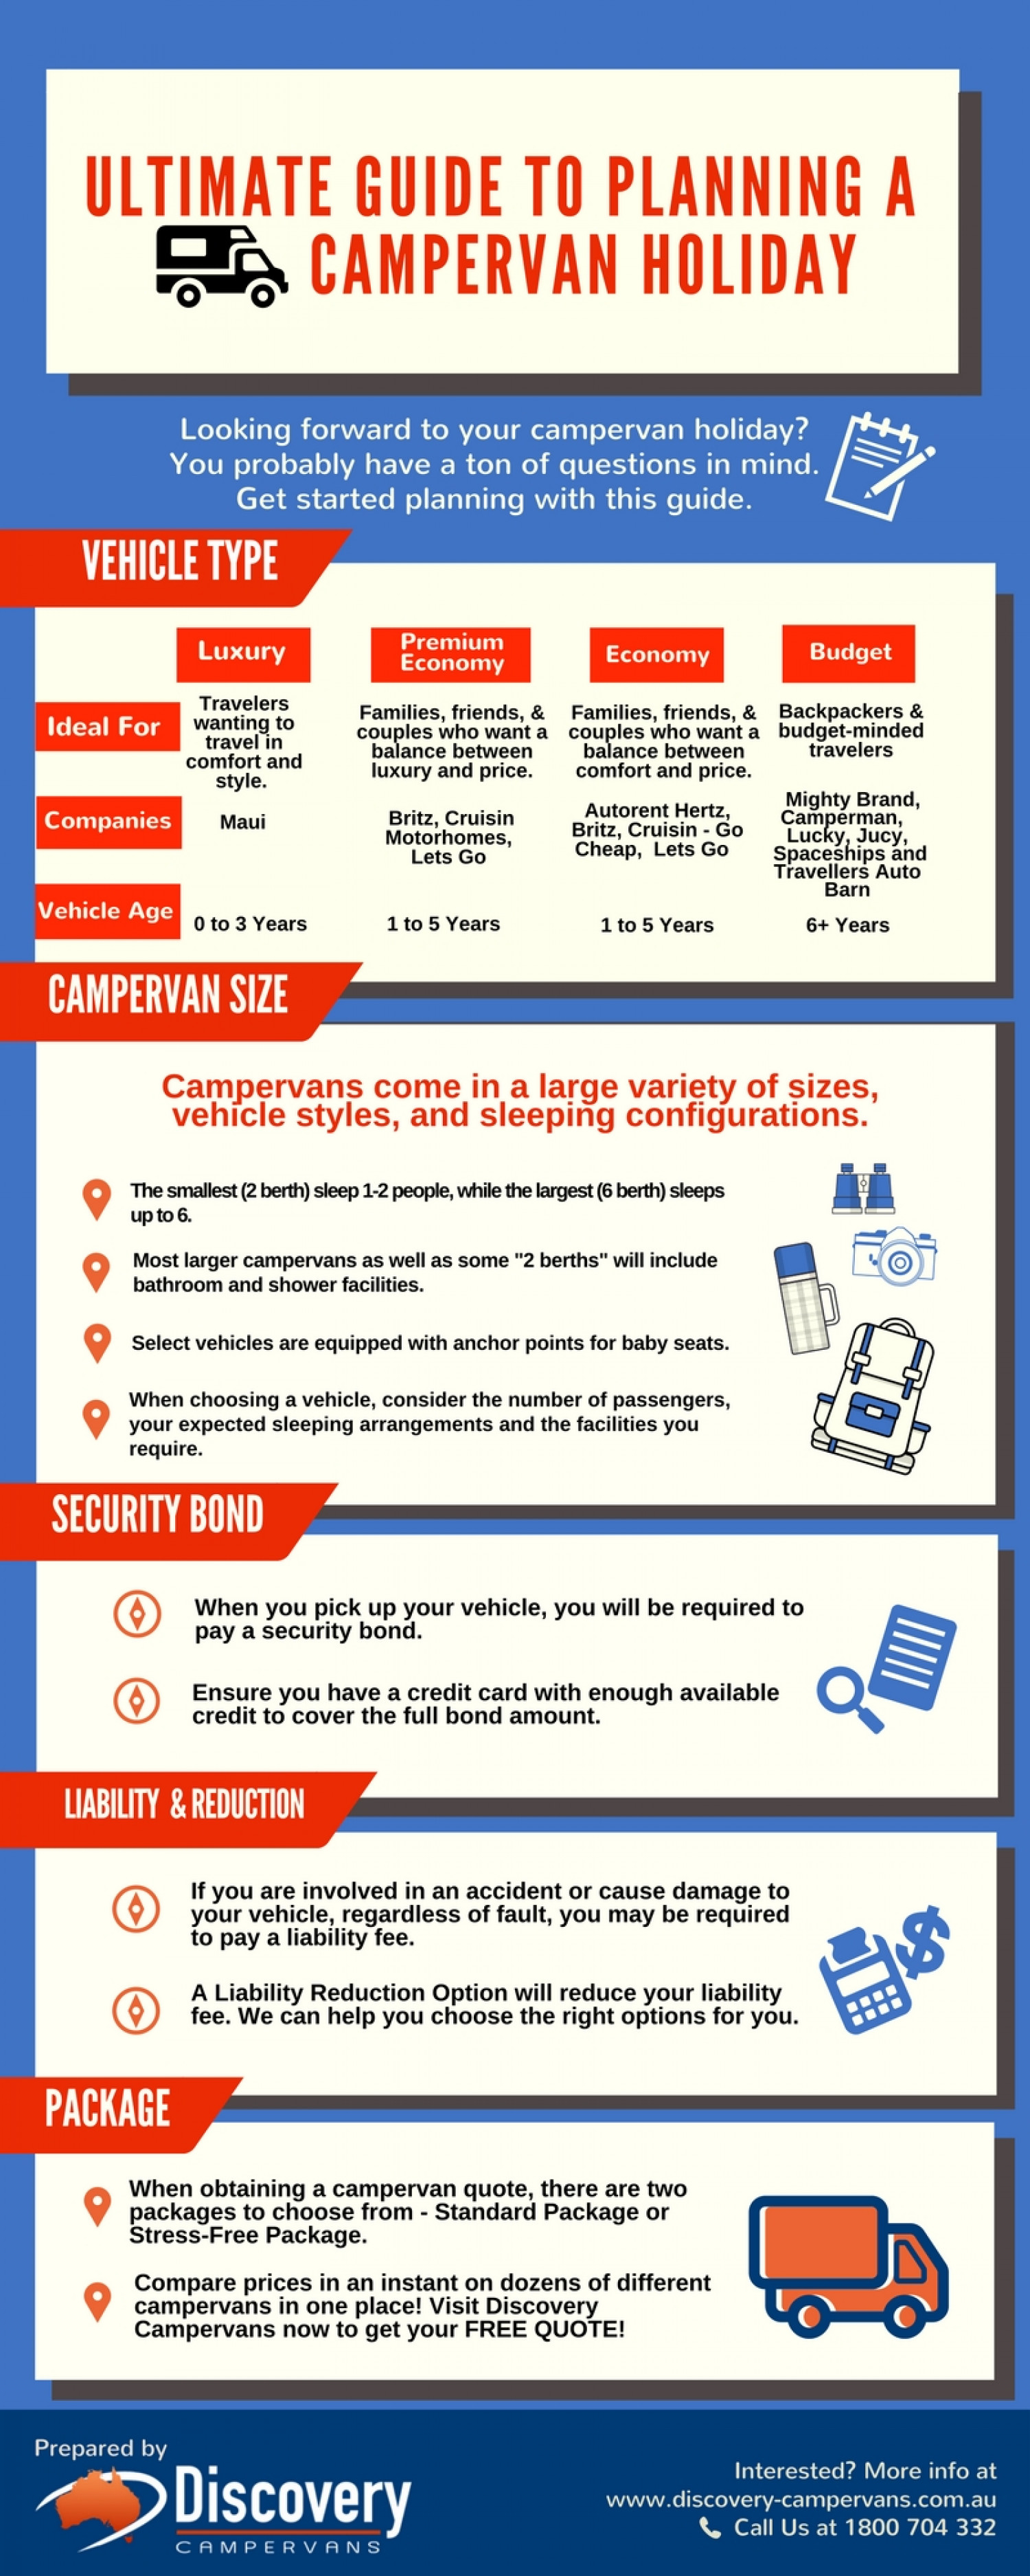 Ultimate Guide to Planning a Campervan Holiday Infographic